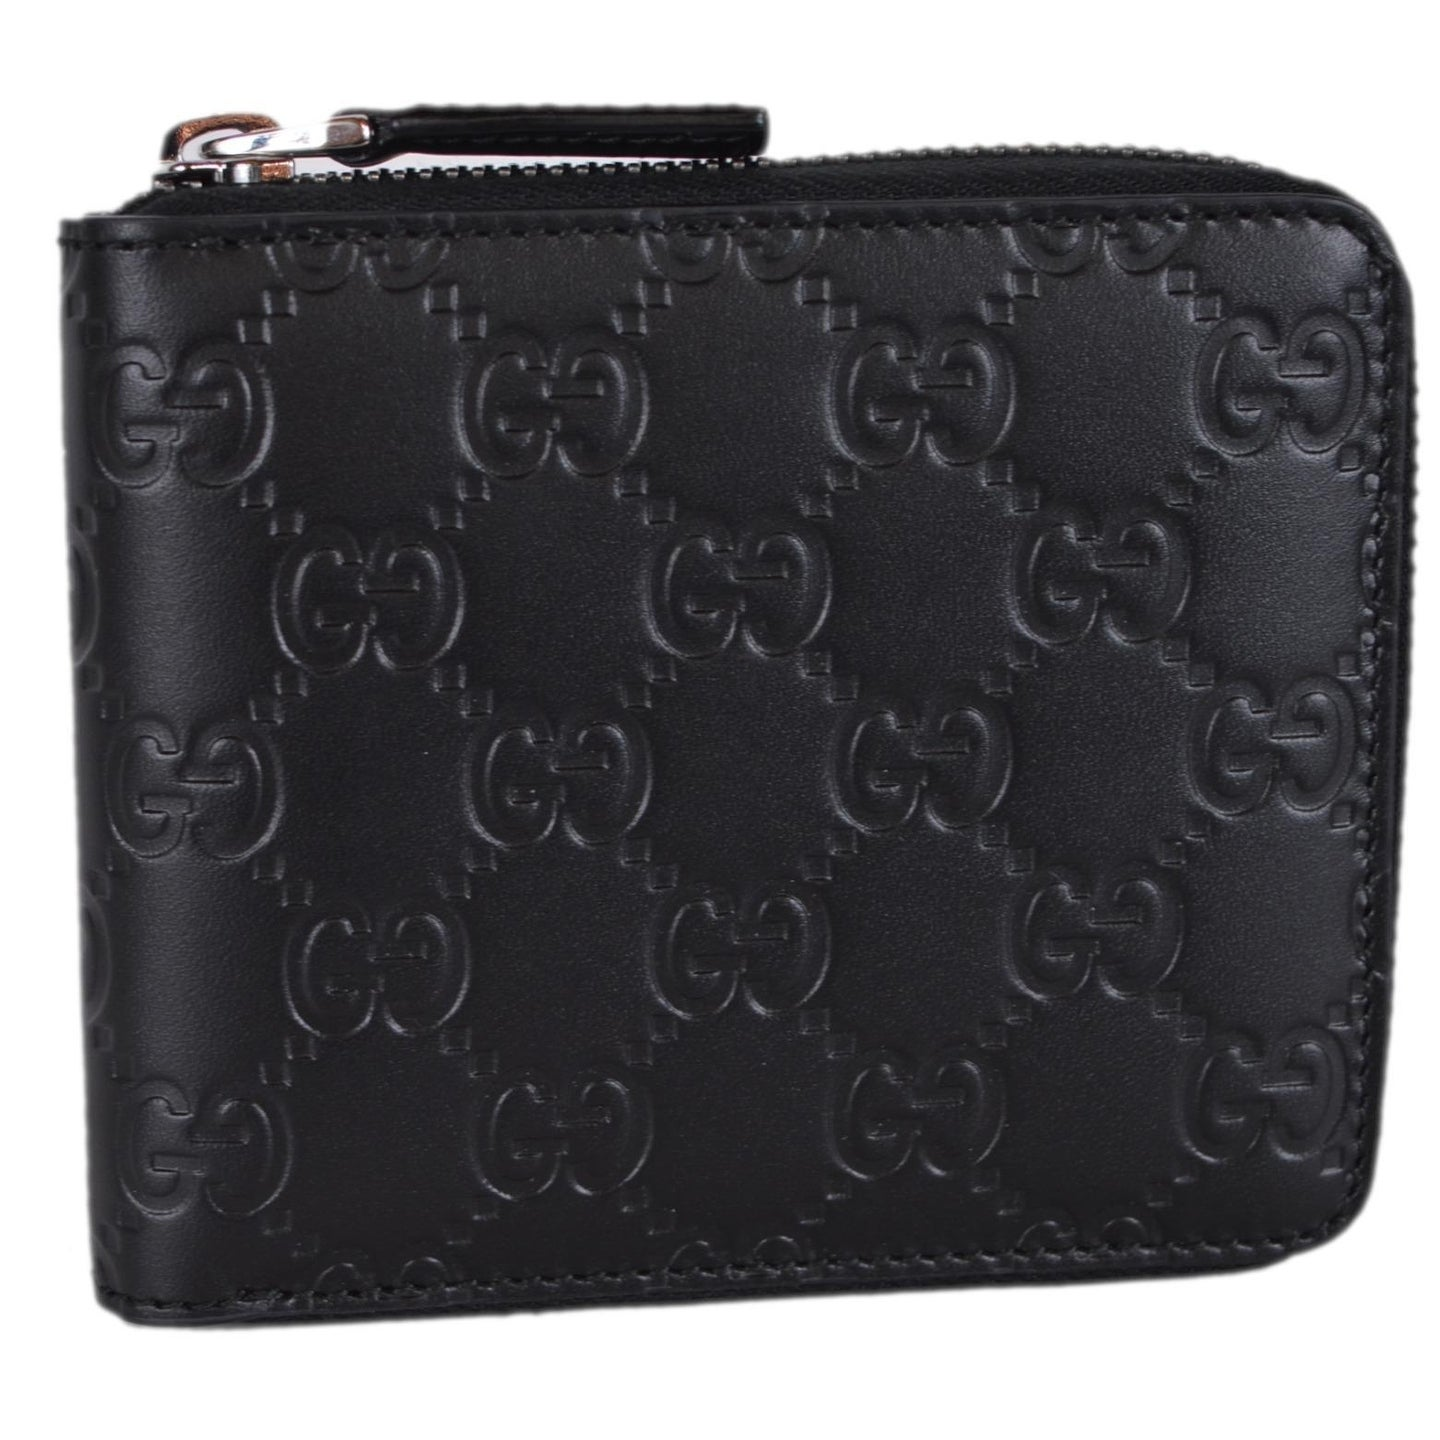 2b4d15670e2 Shop Gucci 473964 Black Leather GG Guccissima Zip Around Small Wallet - 5   x 4